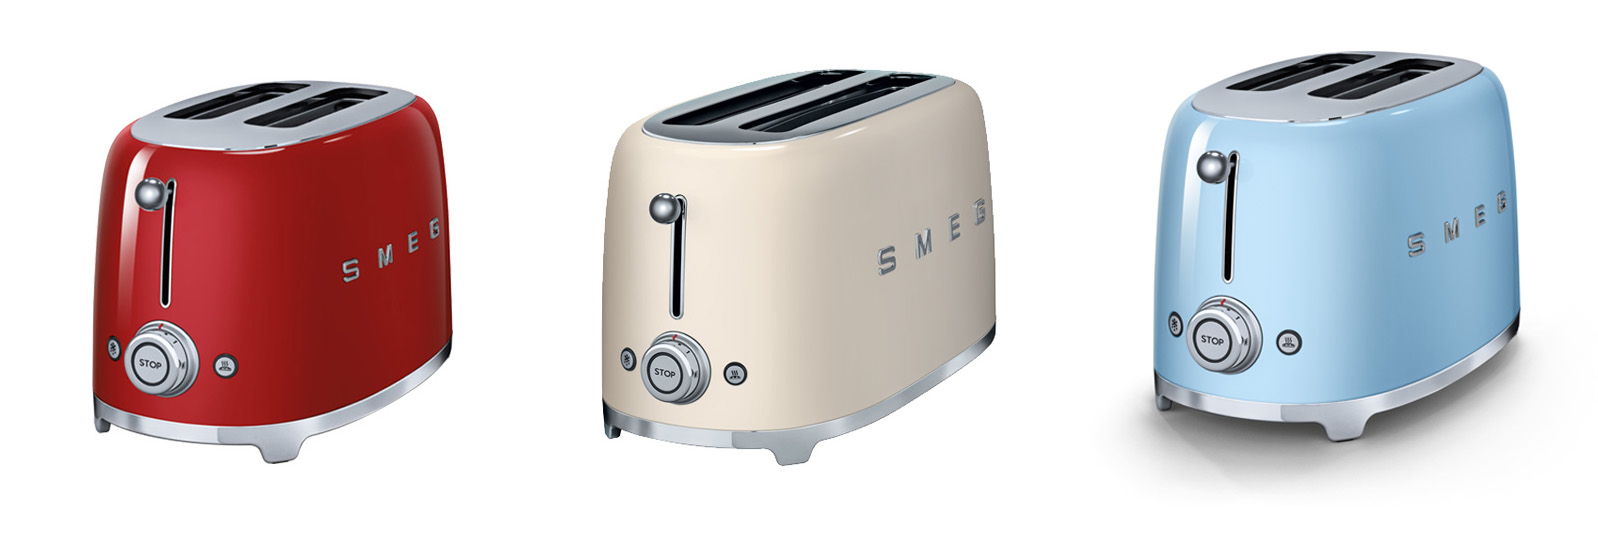 New Kitchen Small Appliances For 2014